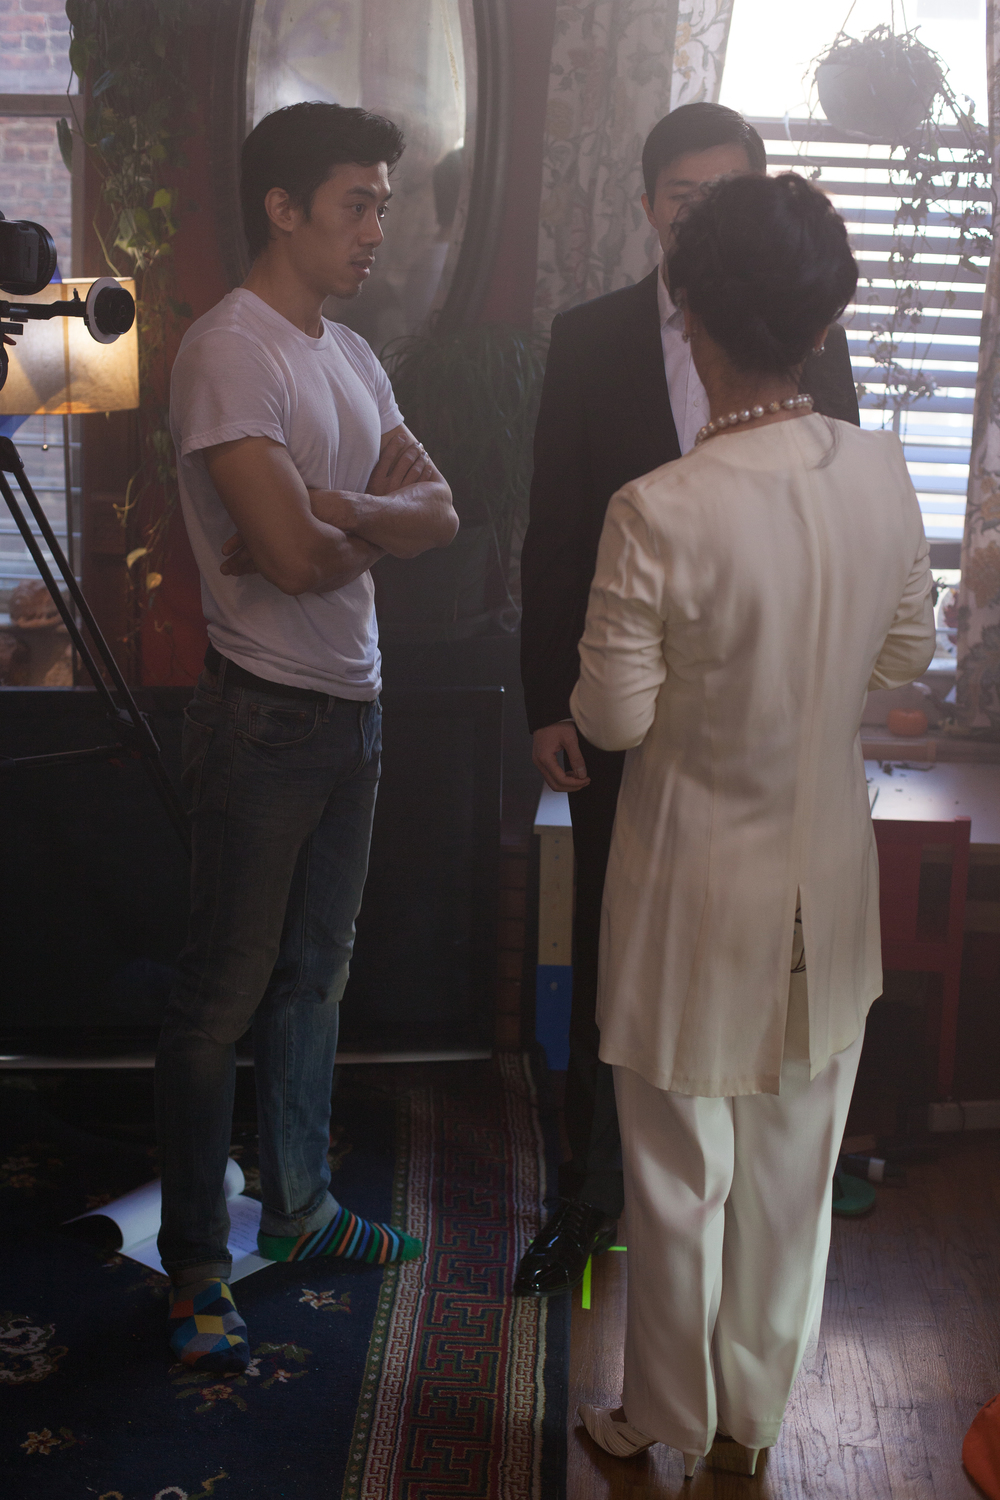 Director Leon Le rehearsing a scene with the actors before a take.